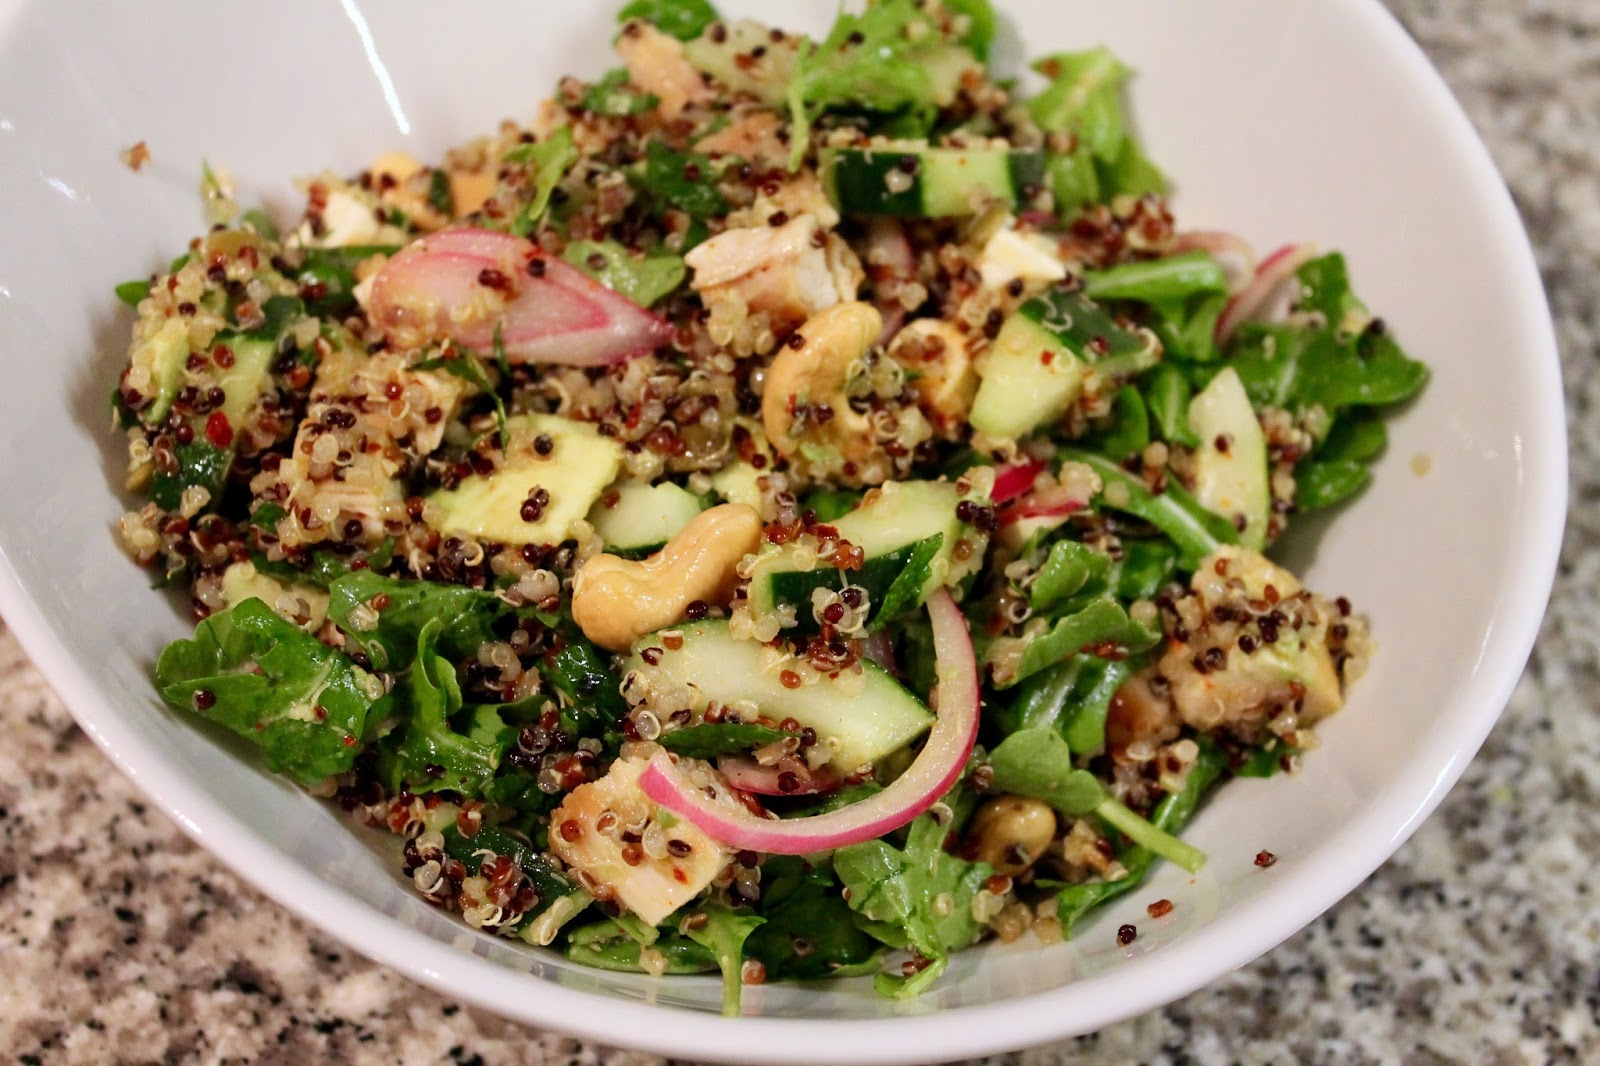 Cook In / Dine Out: Quinoa Salad with Chicken and Vegetables